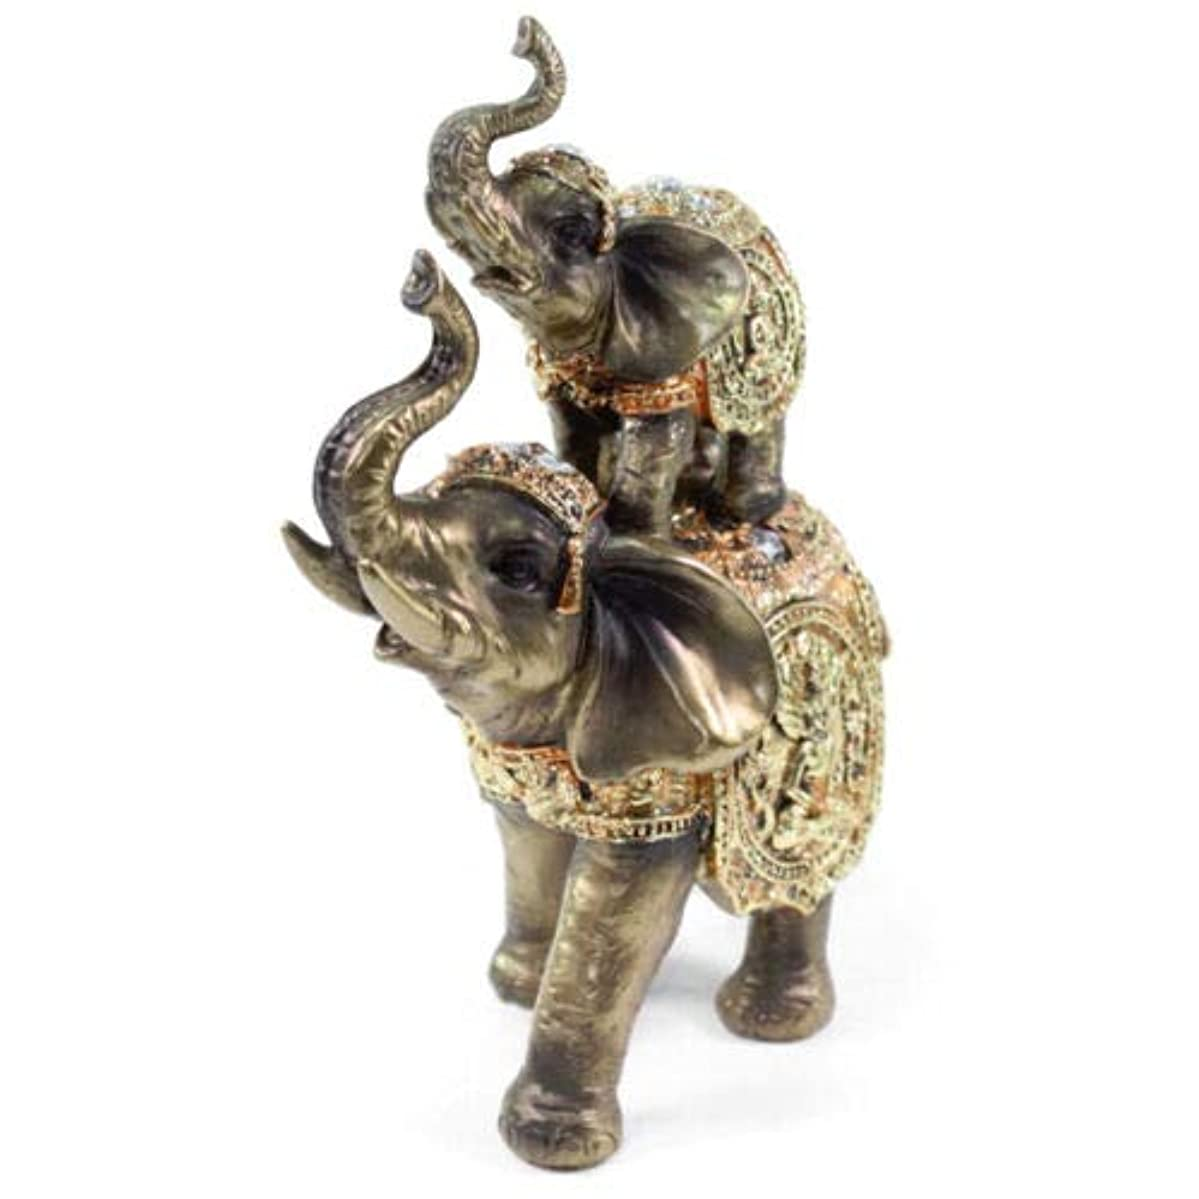 Feng Shui 1 Up & Down Elephant Trunk Statue Lucky Figurine Gift Home Decor Bronze